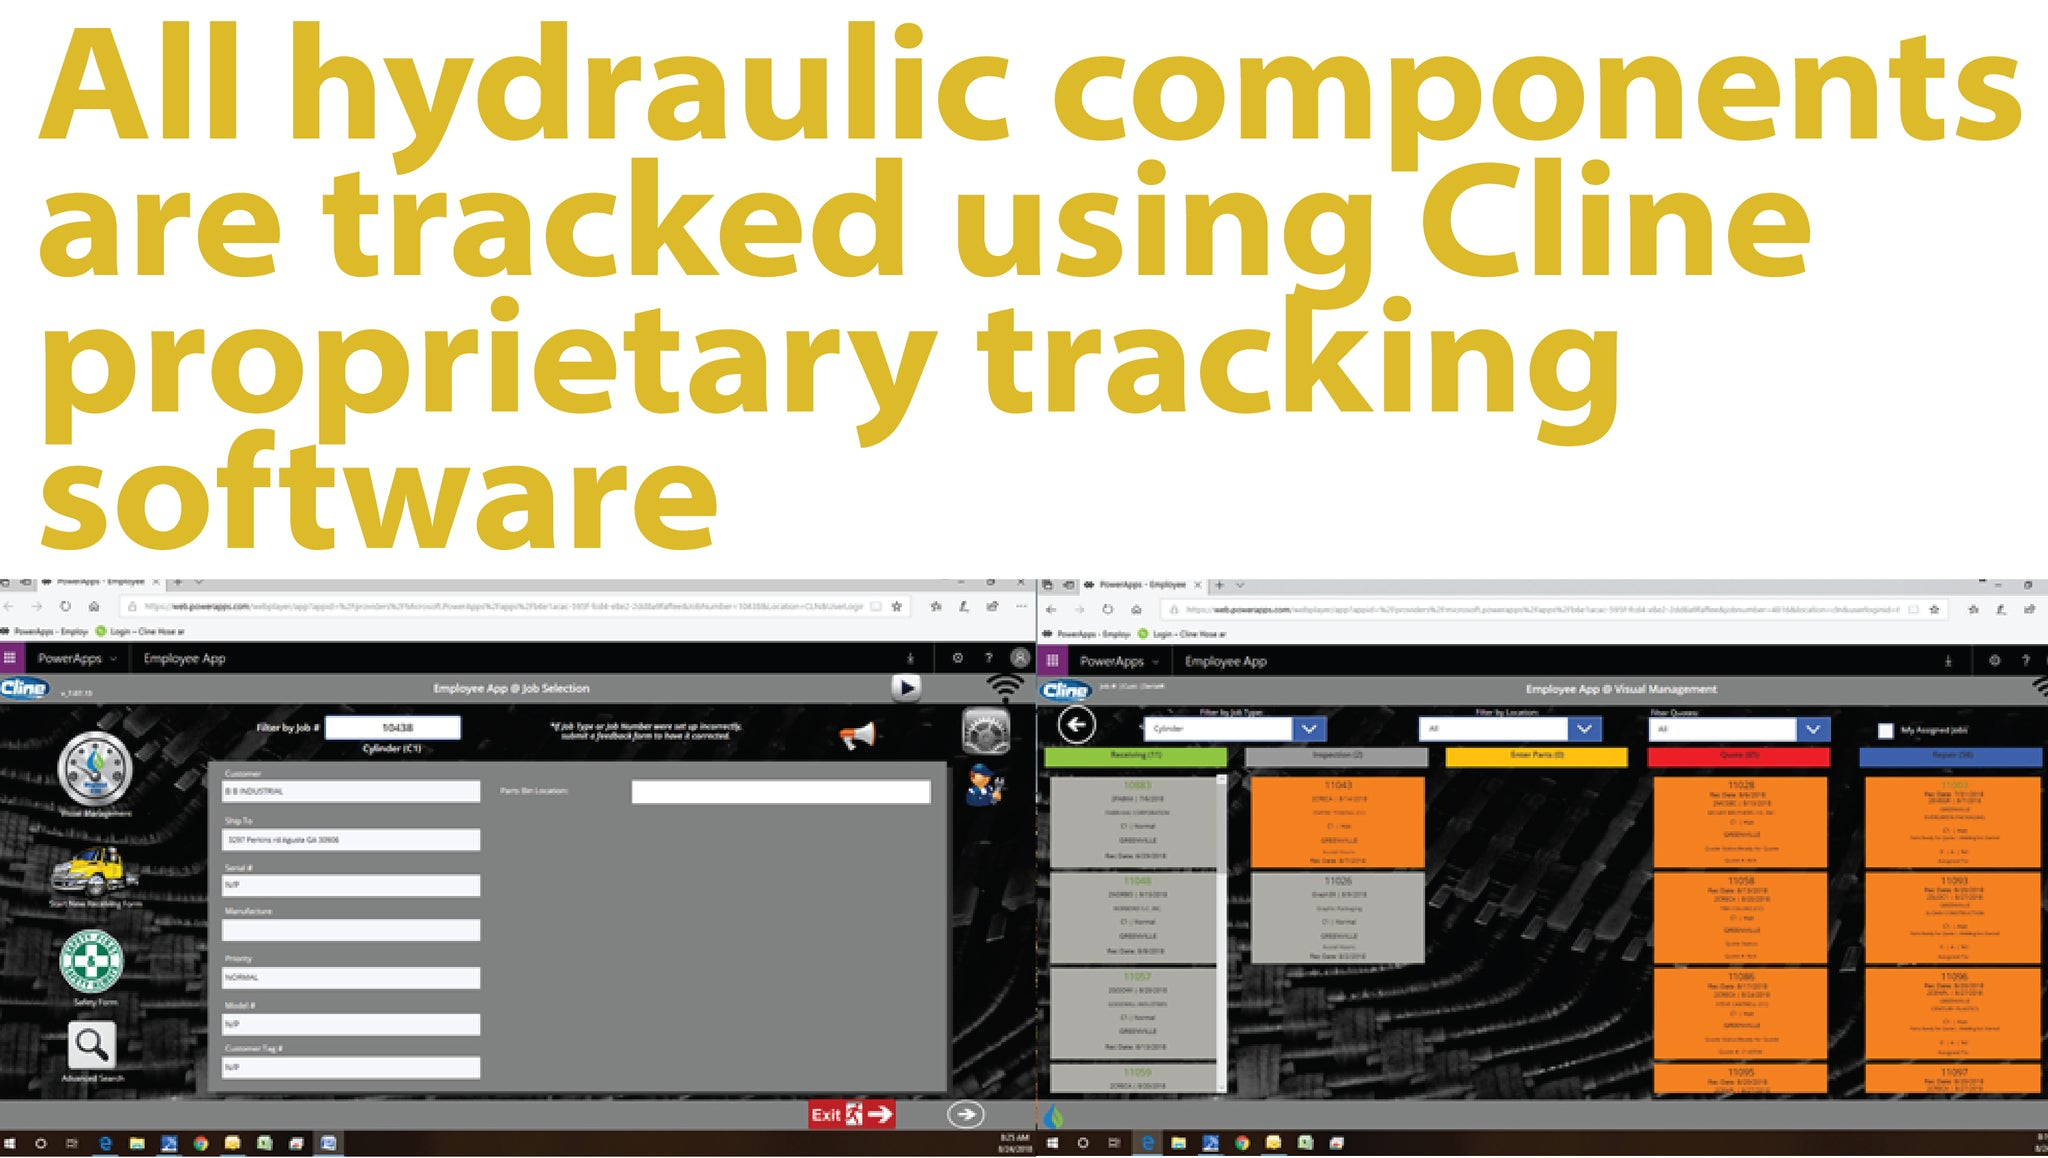 Cline Confluent/Microsoft hydraulic component tracking software